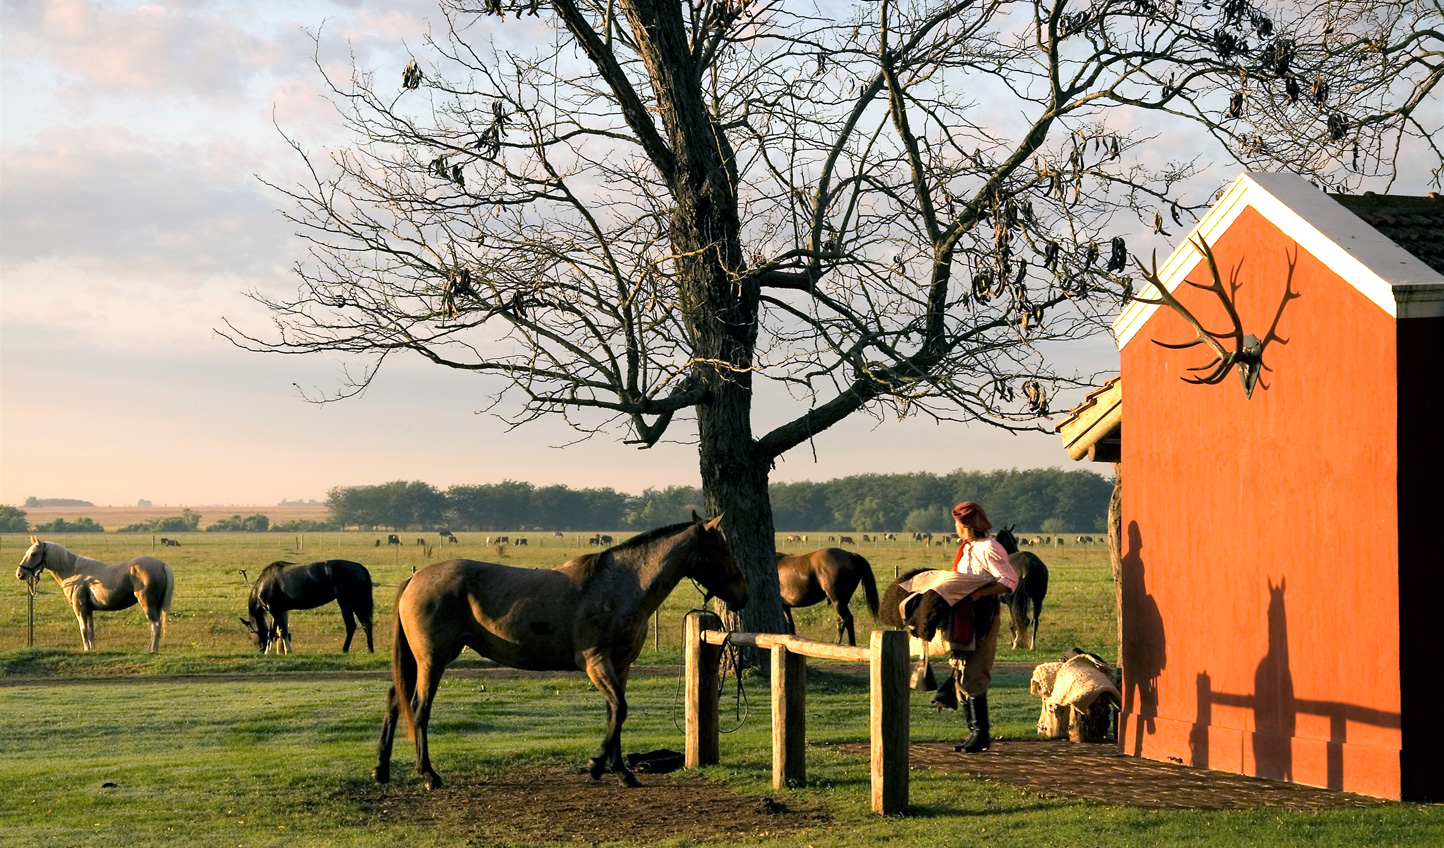 Live life on the Estancia and explore your surroundings by horseback